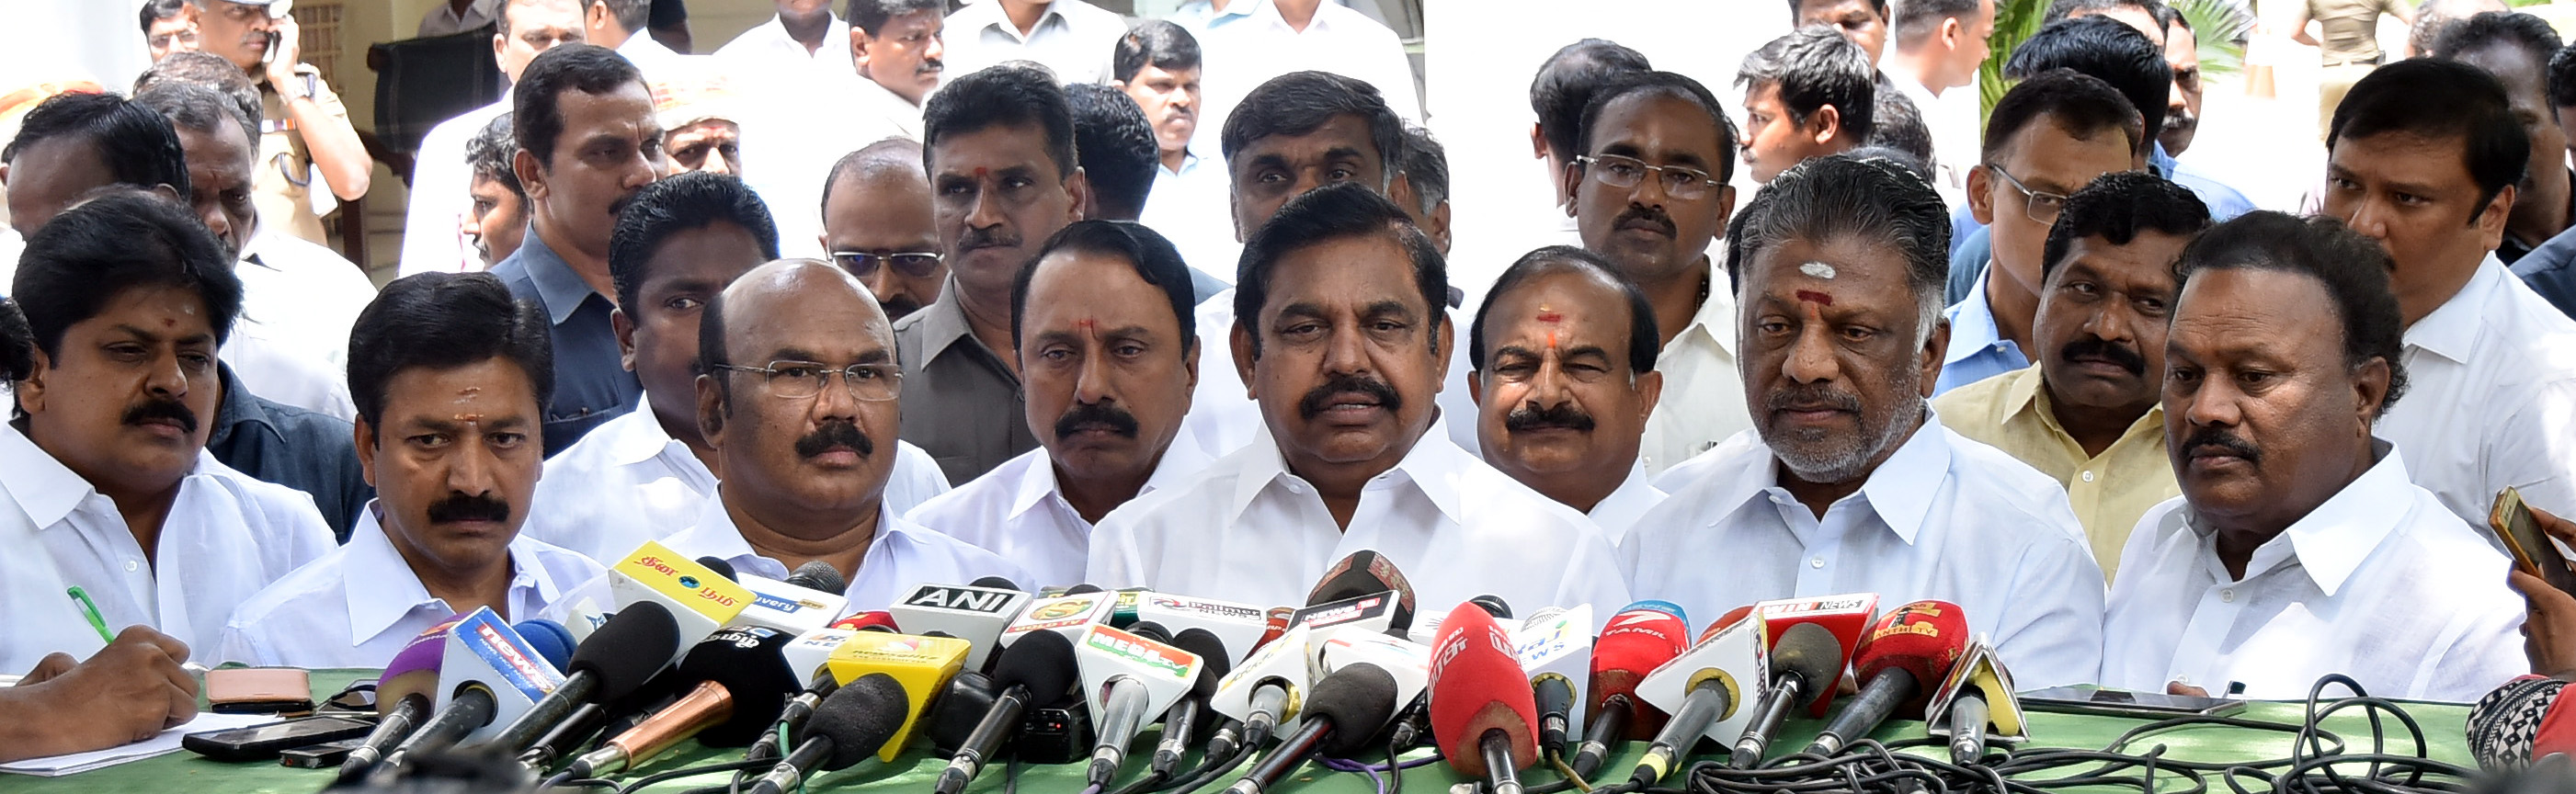 In a surprise move, Tamil Nadu government decides to oppose center's proposal to scrap UGC